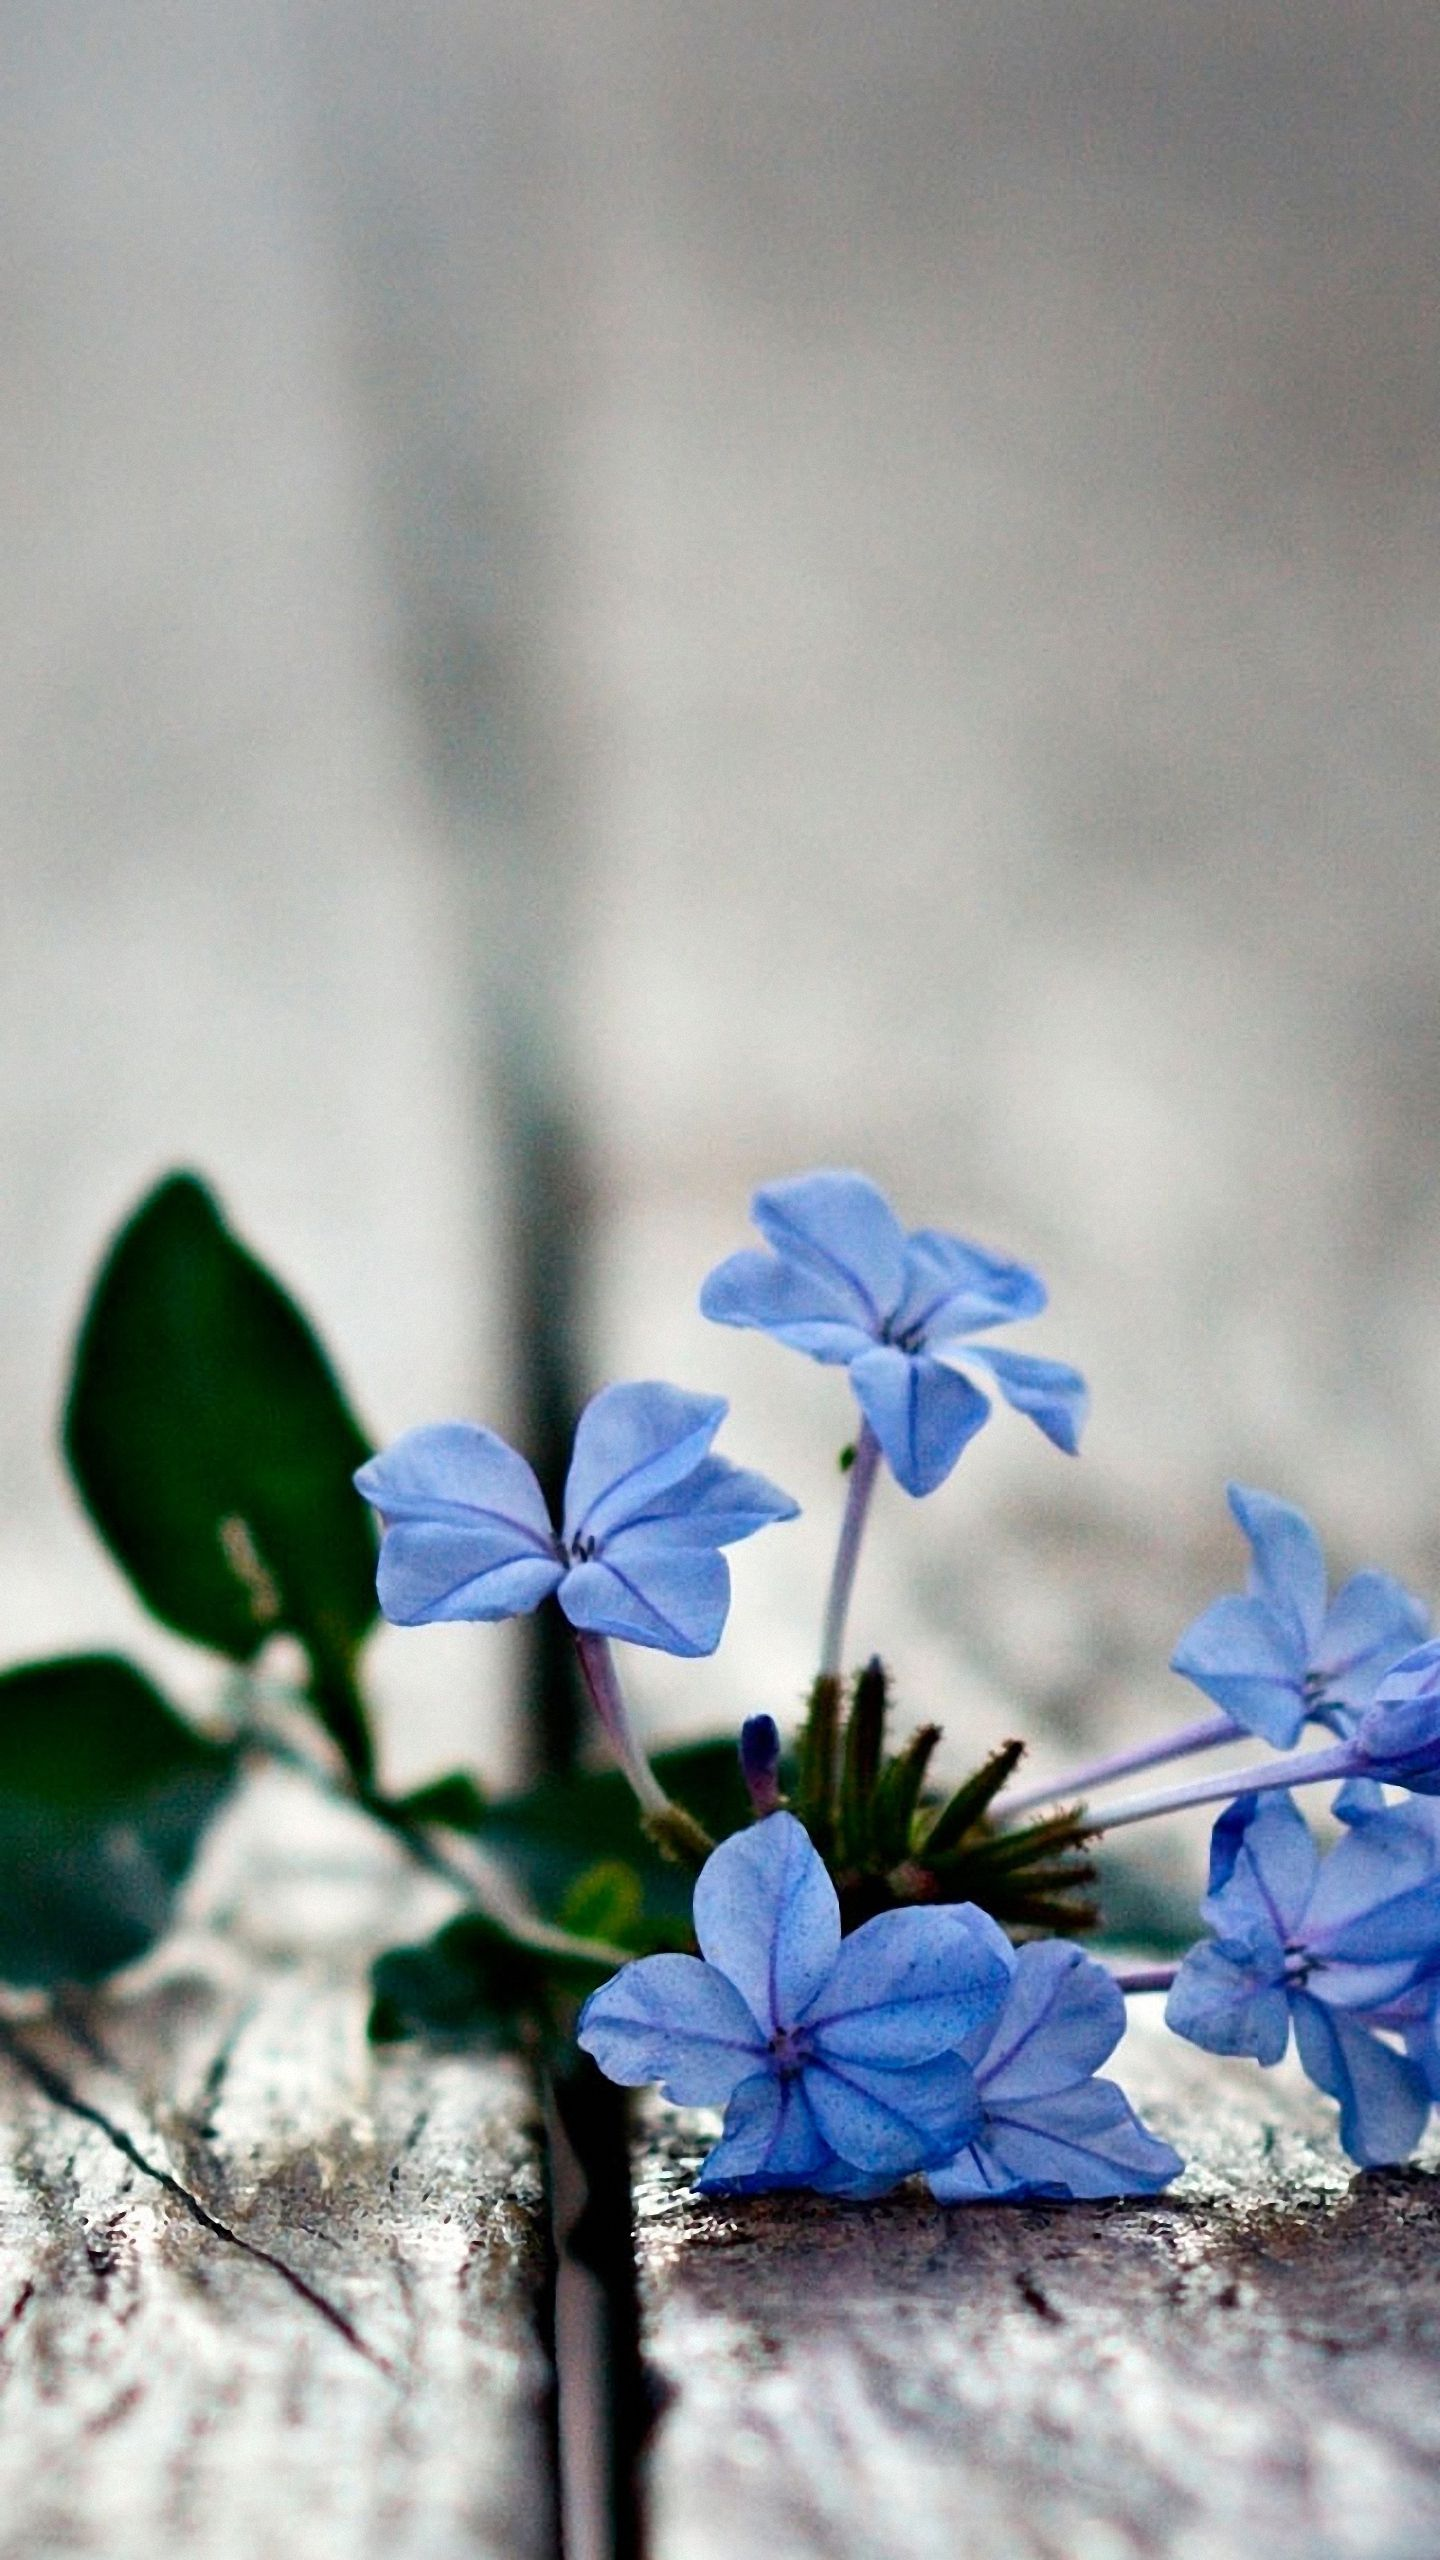 Hd 1440x2560 blue flowers mobile phone wallpapers - Flower wallpaper hd for mobile ...